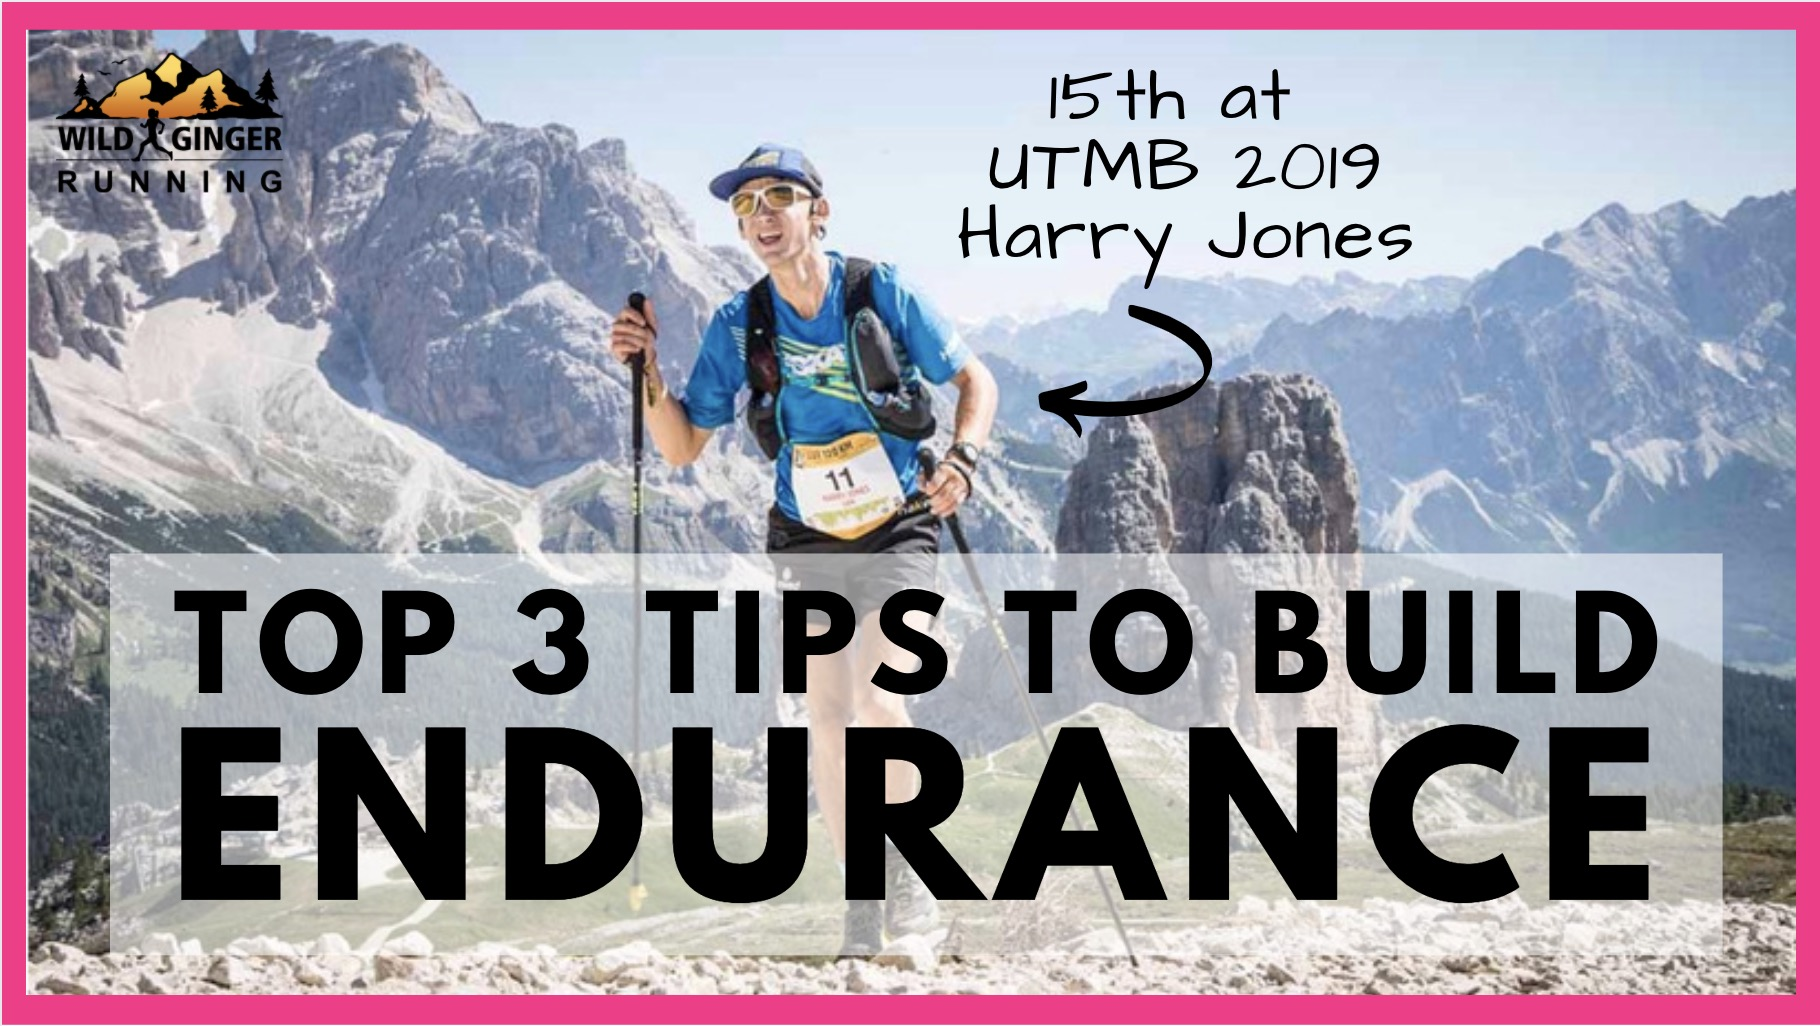 Top 3 tips for endurance from Harry Runs after his 15th place at UTMB 2019 (3rd Brit!)